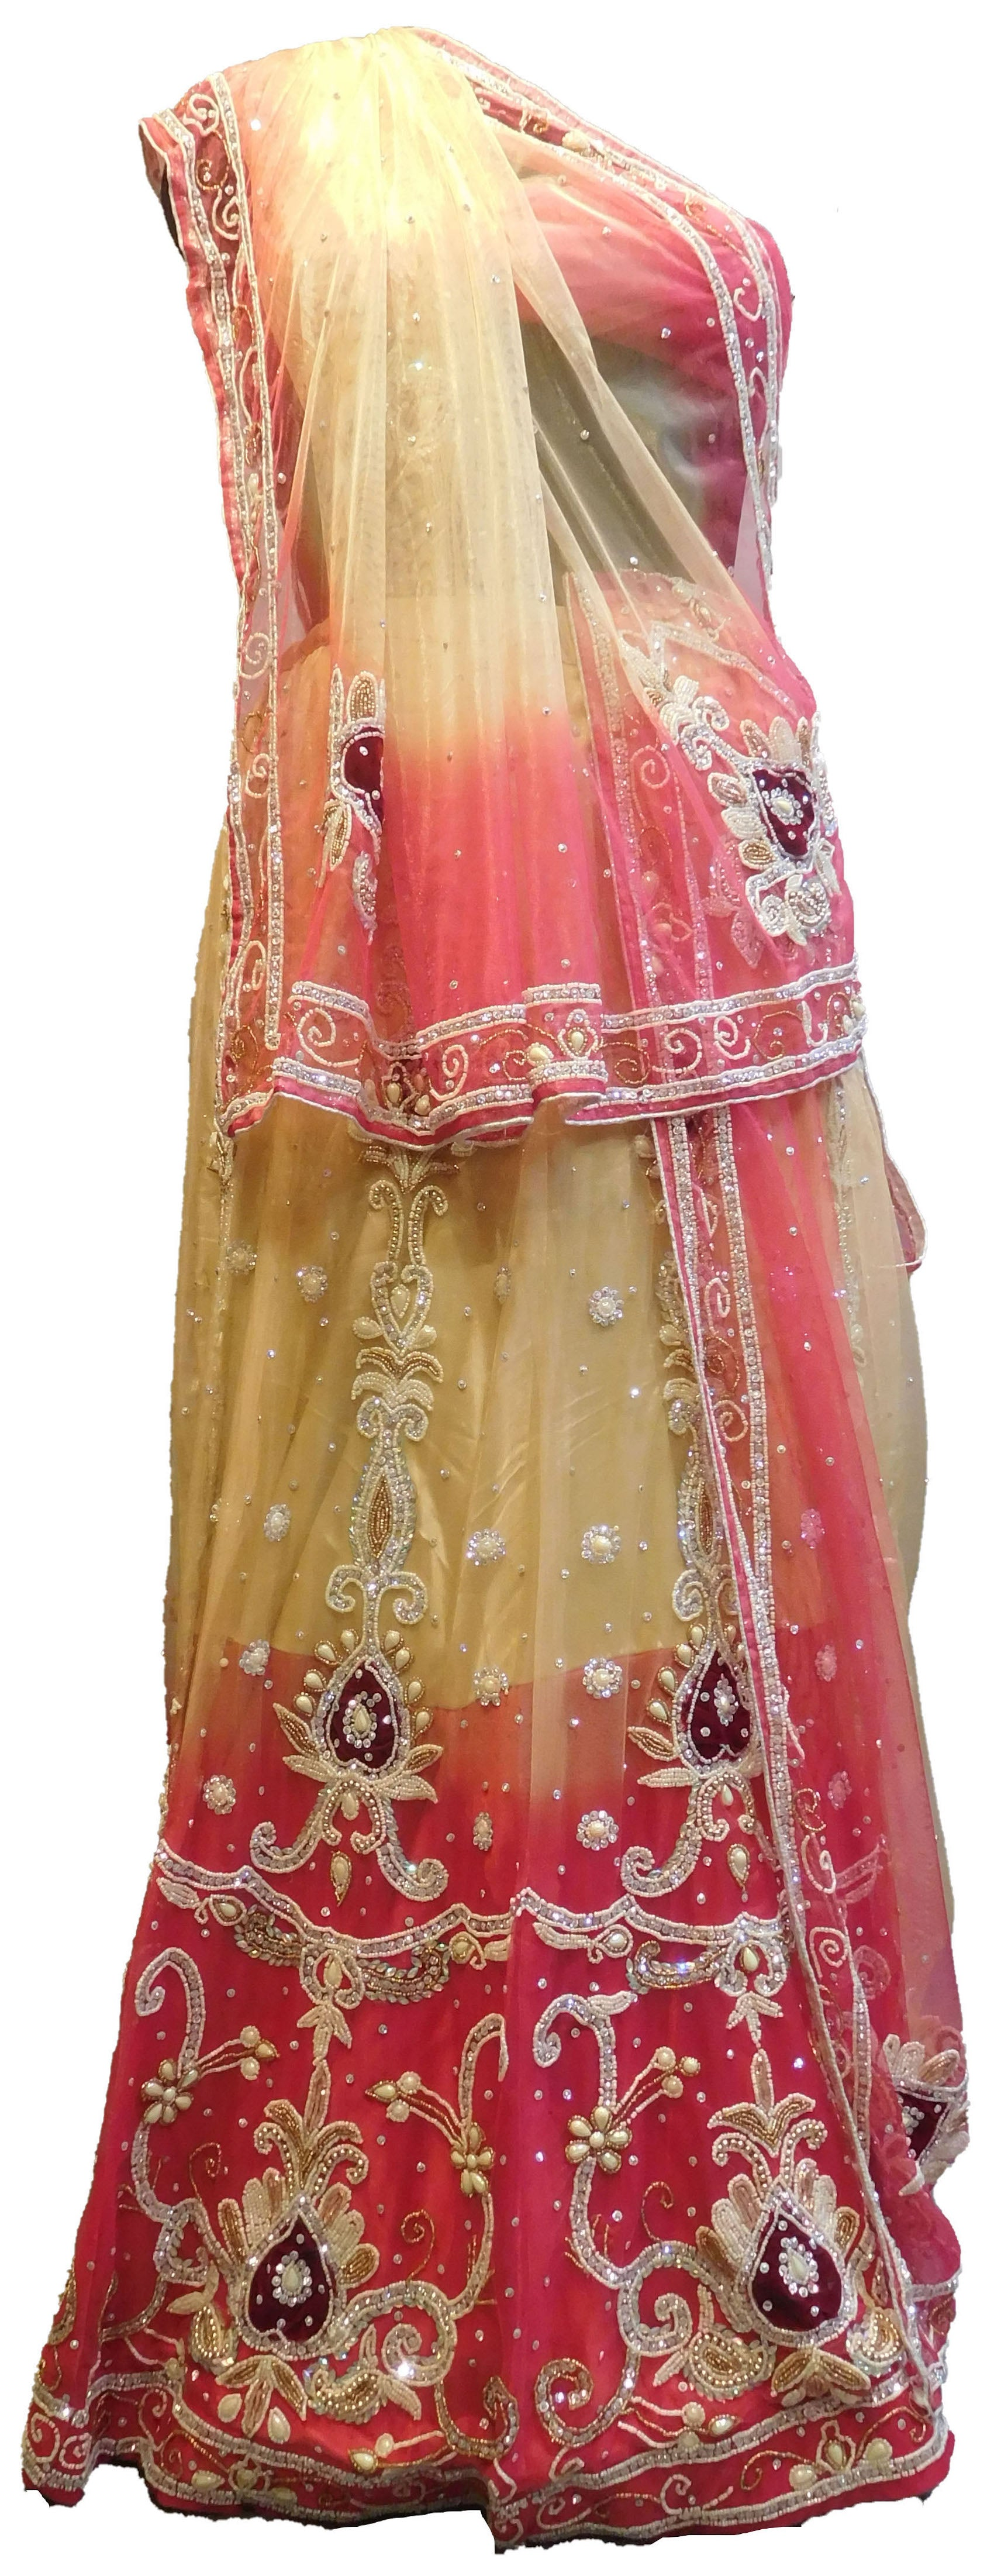 SMSAREE Pink & Cream Designer Wedding Partywear Net Stone Beads Cutdana & Pearl Hand Embroidery Work Bridal Lahenga Choli Dupatta SemiStitched LAE622